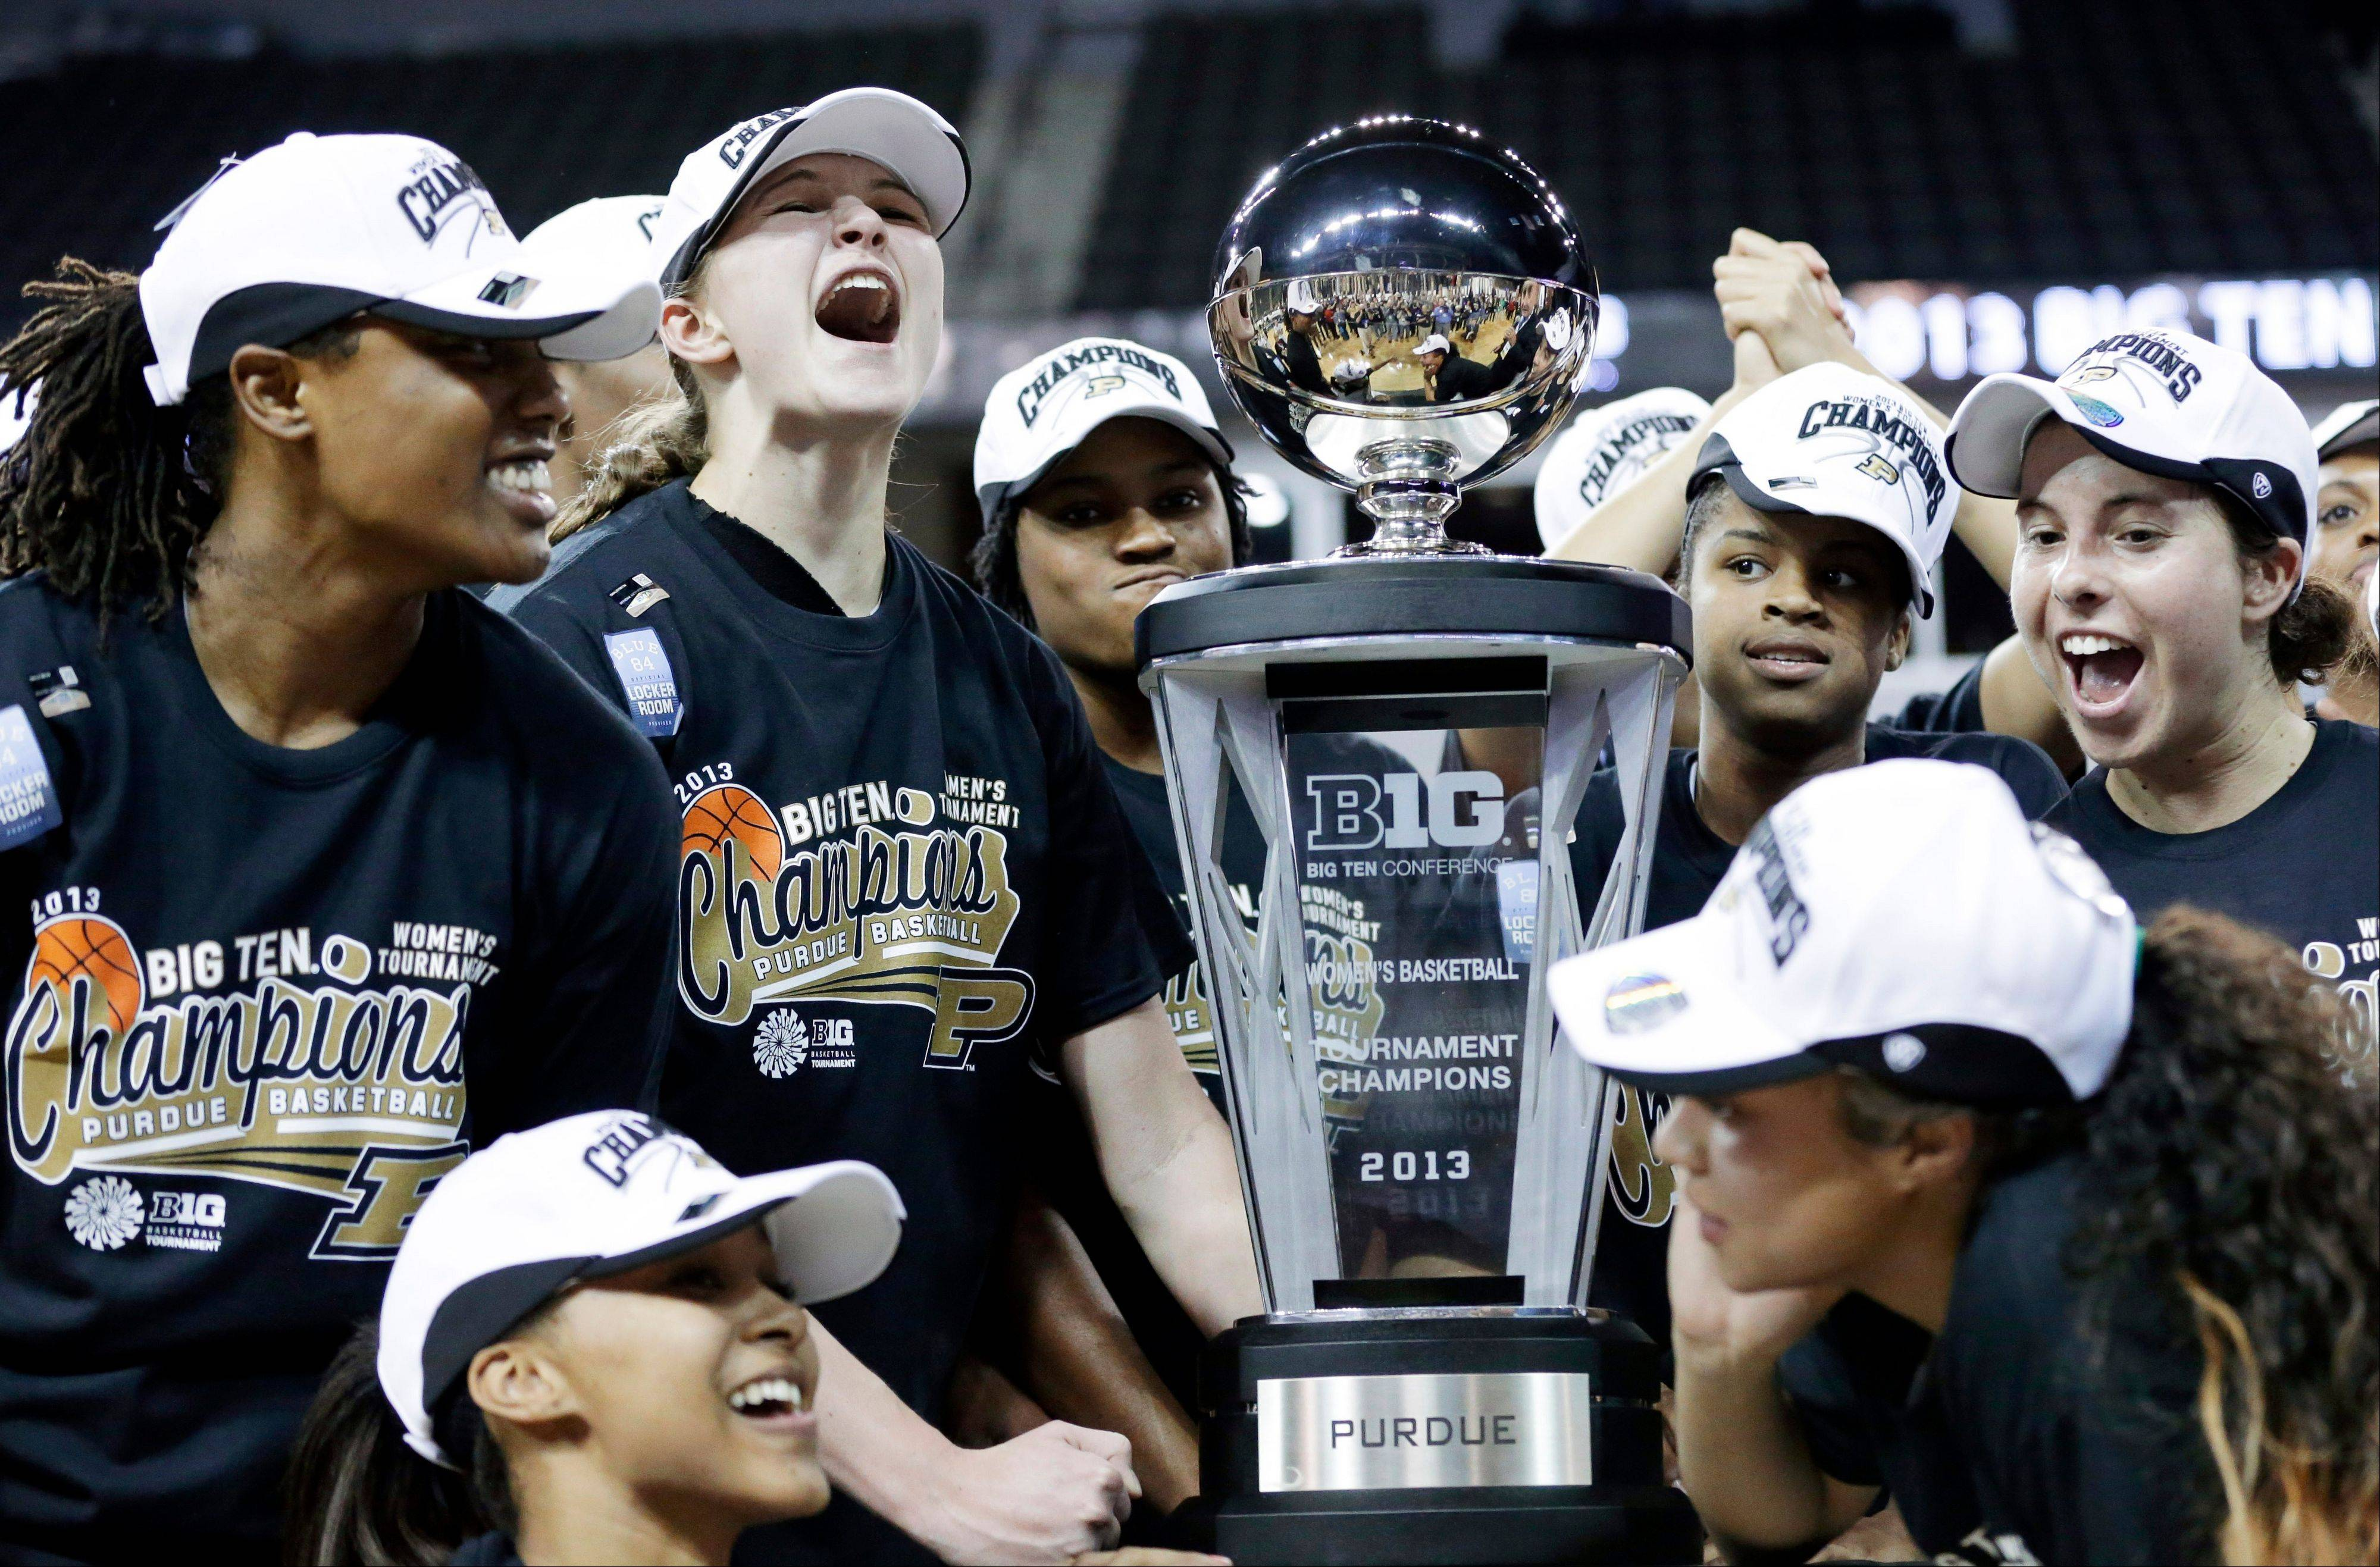 Purdue players celebrate with the trophy after their 62-47 win over Michigan State in the Big Ten women's basketball title game at Sears Centre in Hoffman Estates.